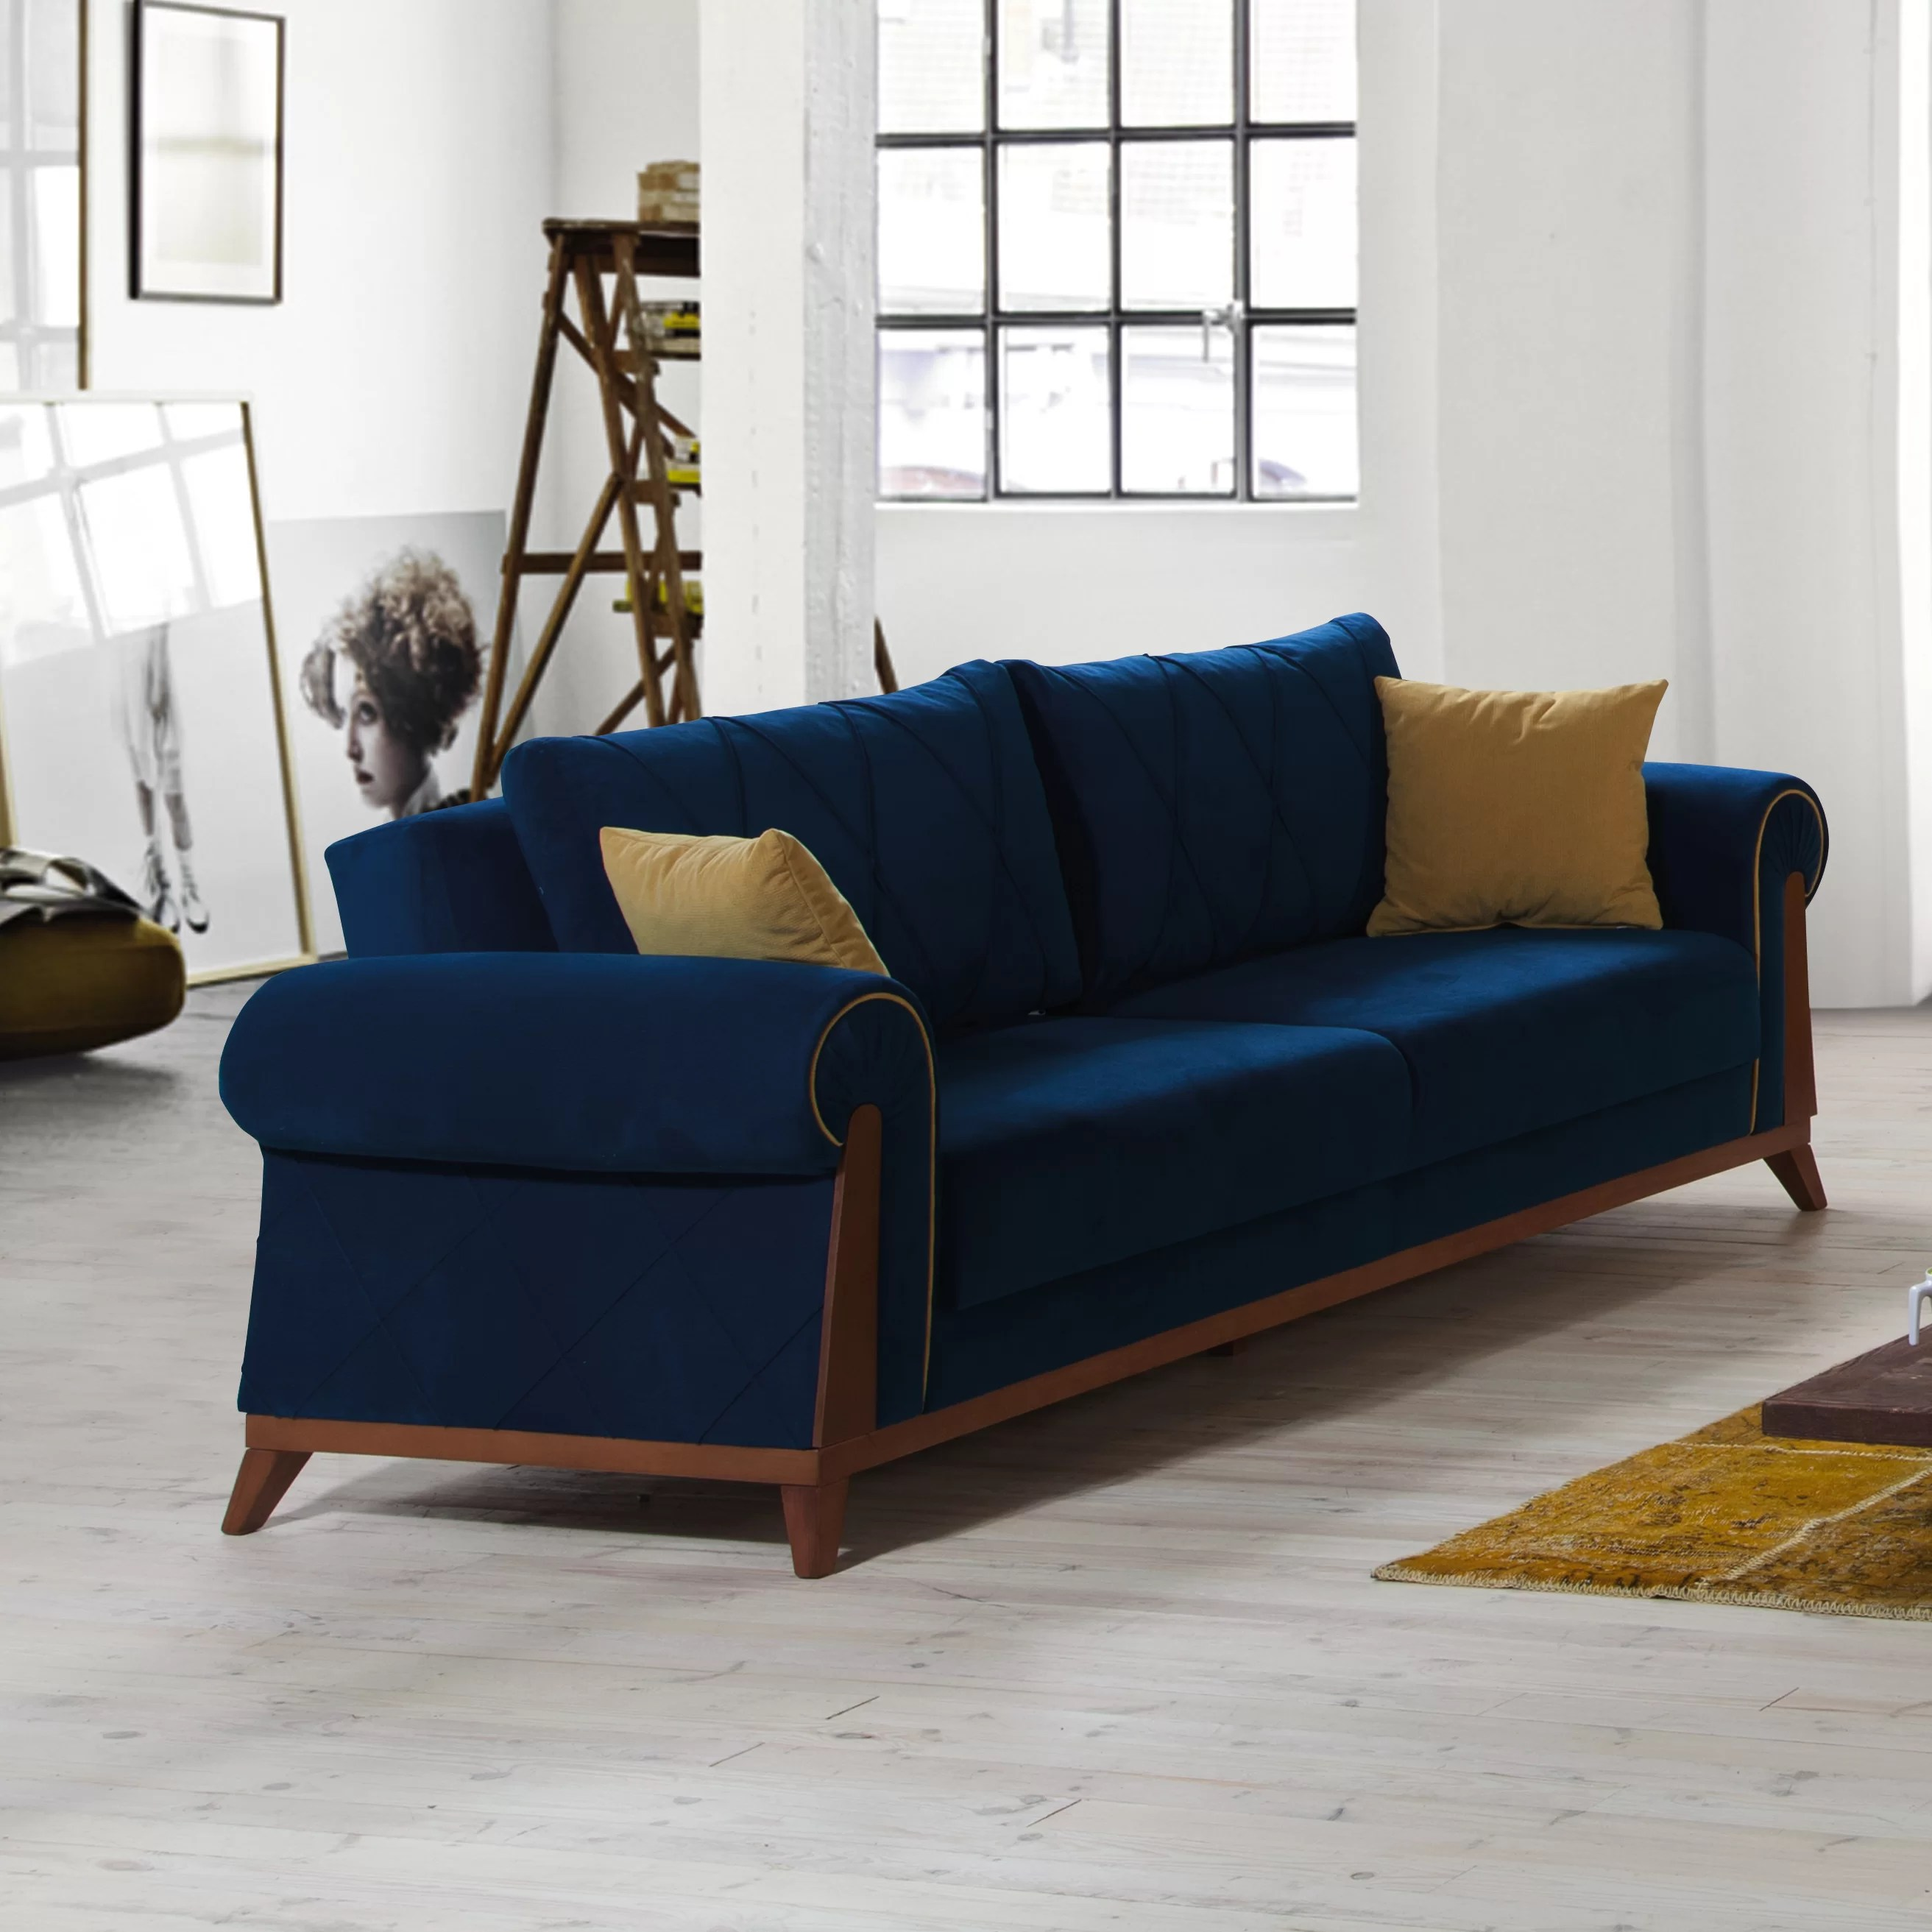 sofa bed next day delivery london black country table perla furniture sleeper and reviews wayfair